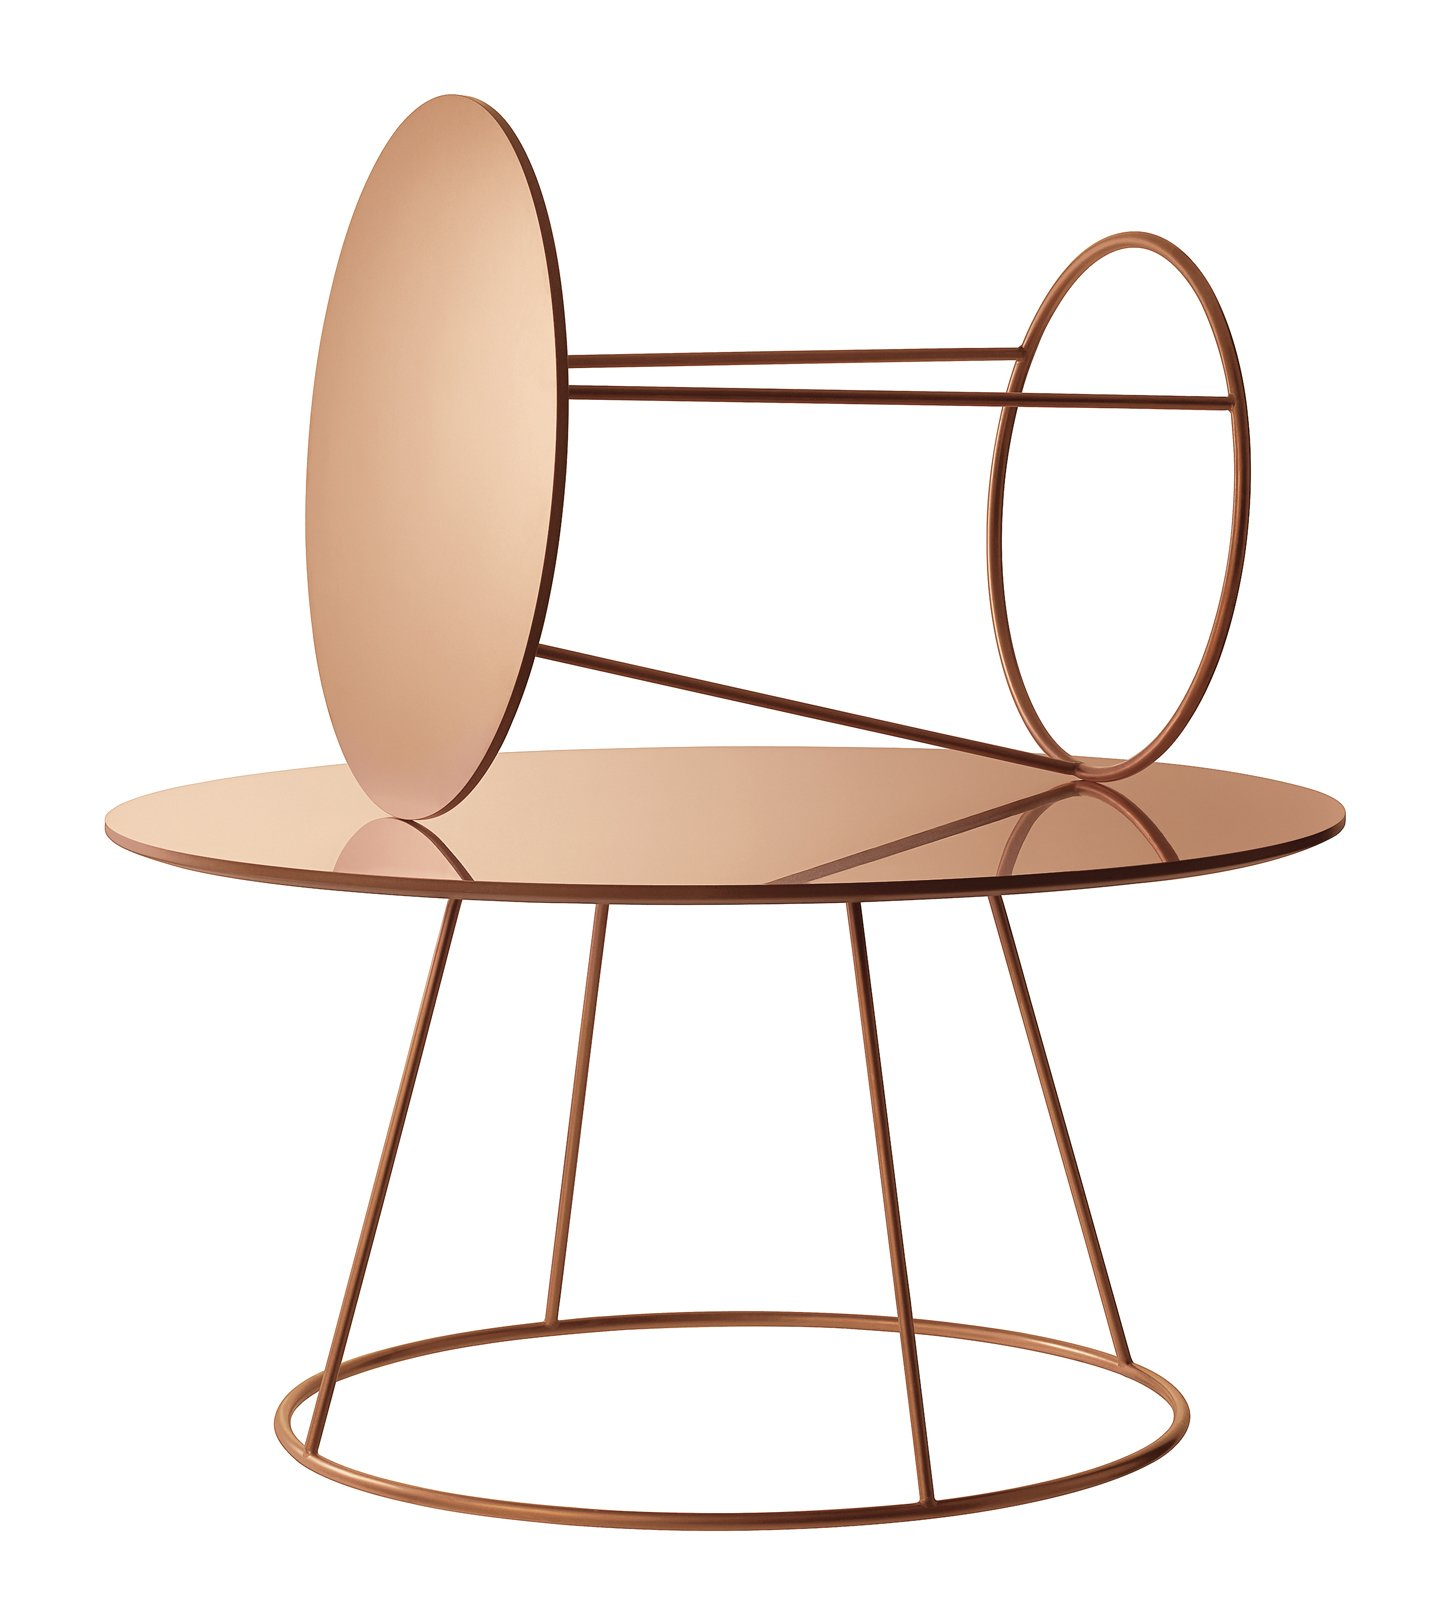 The Breeze tables by Monica Förster for Swedese Förster's debuted a new look at the 2013 Stockholm Furniture Fair: a copper-plated steel base with a laminated copper top, $1,495–$1,995 hightoweraccess.com  Modern Metallic Furniture and Product Designs by Kelsey Keith